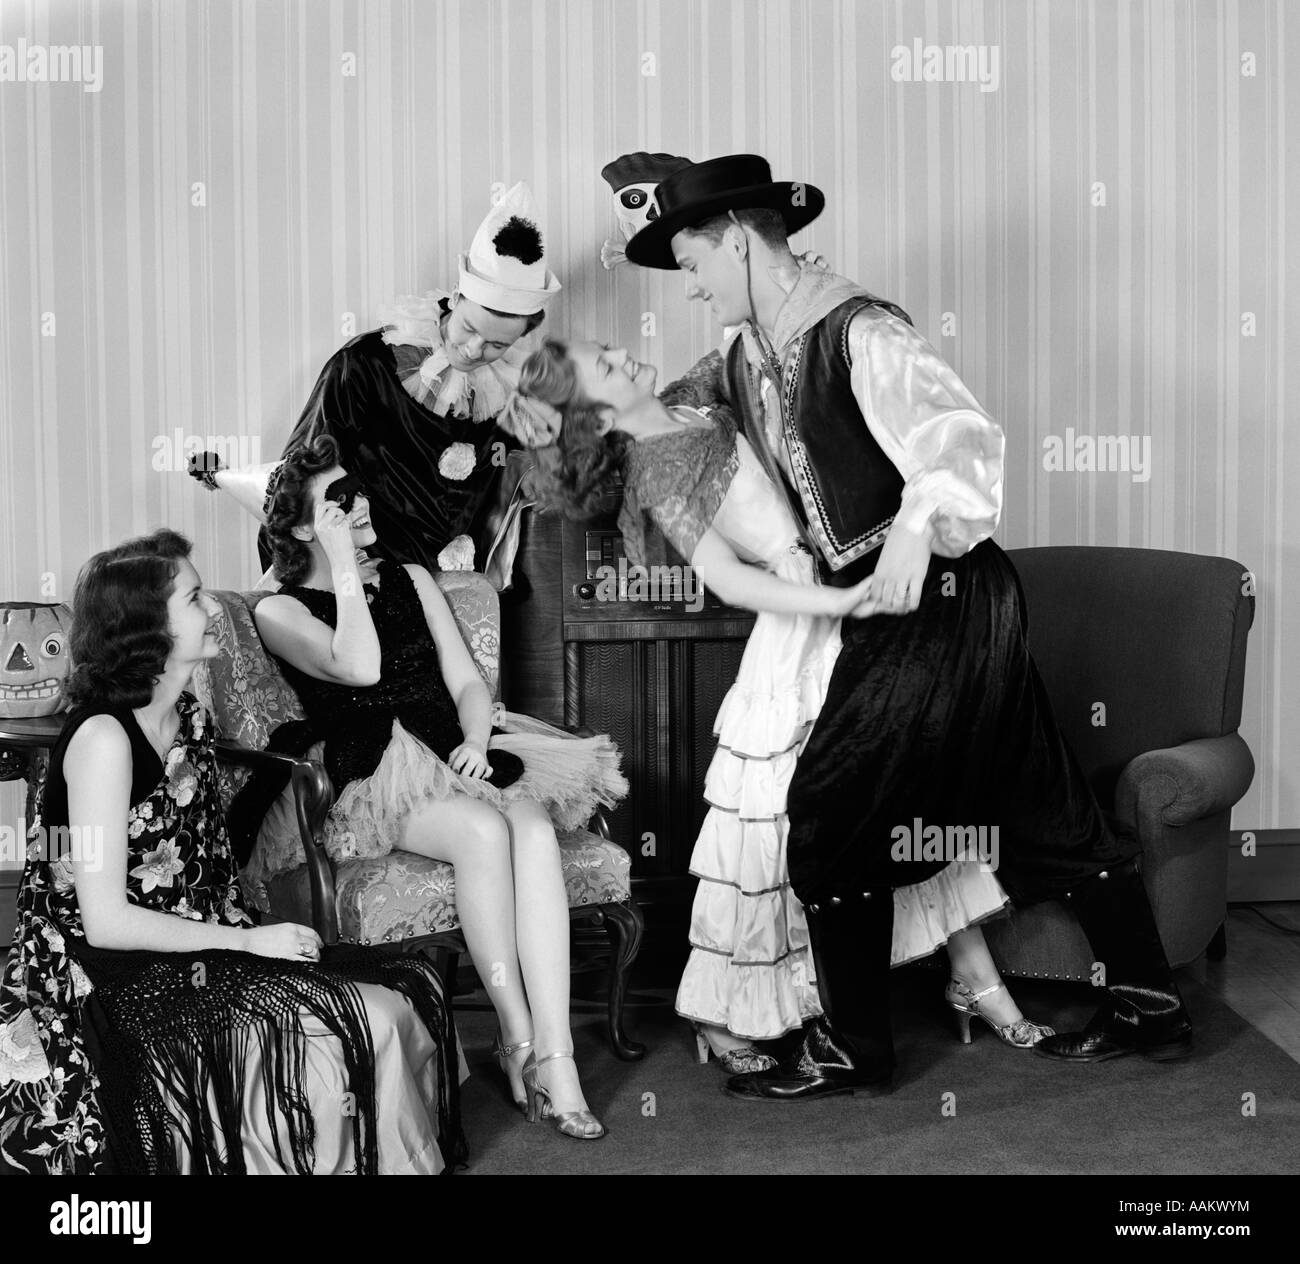 1930s 1940s YOUNG COUPLES DRESSED IN COSTUMES DANCING AT HOME HALLOWEEN PARTY - Stock Image  sc 1 st  Alamy & Man In 1940s Suit Stock Photos u0026 Man In 1940s Suit Stock Images - Alamy